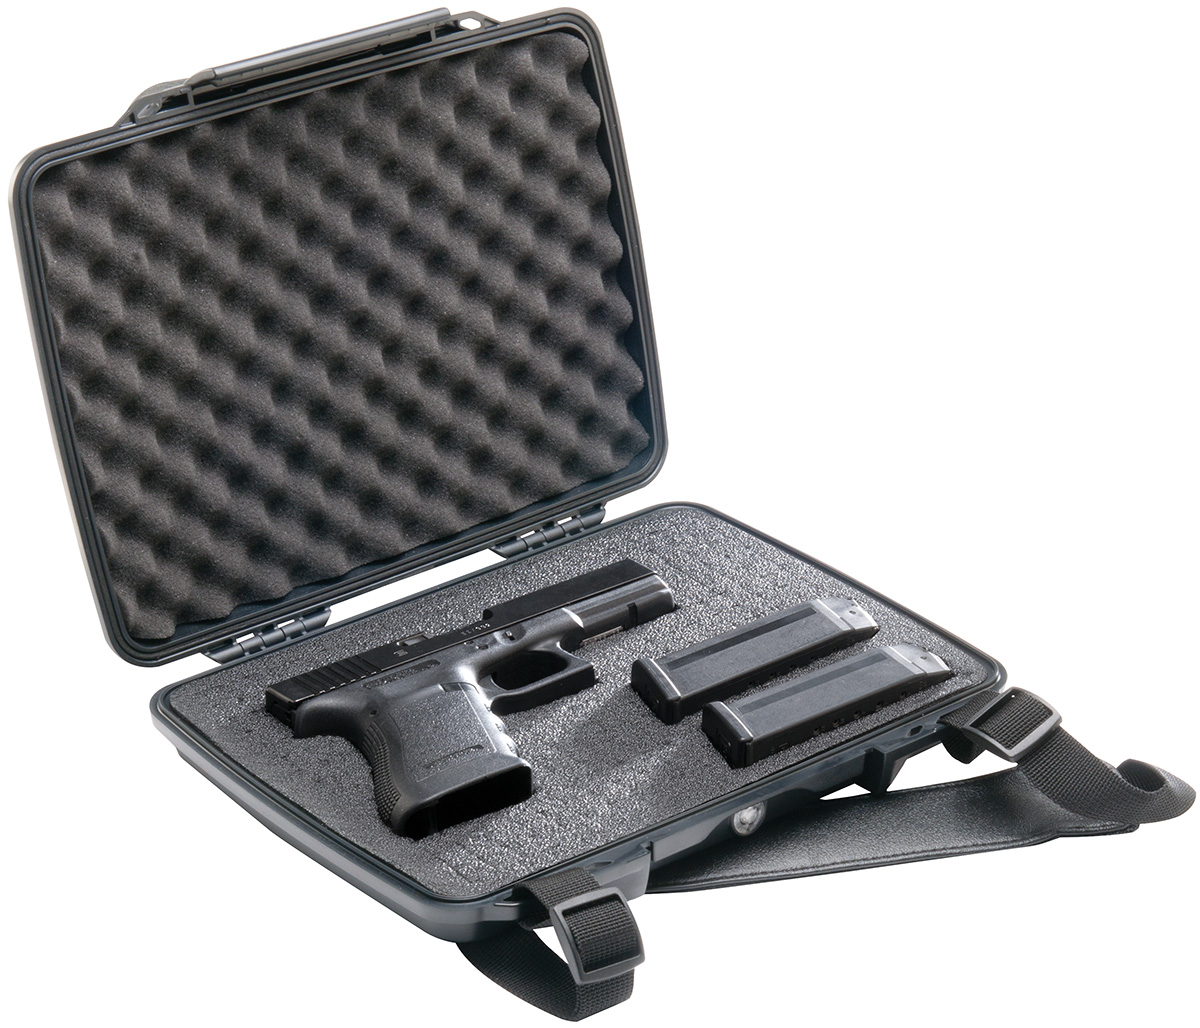 pelican peli products P1075 hard pistol gun waterproof case